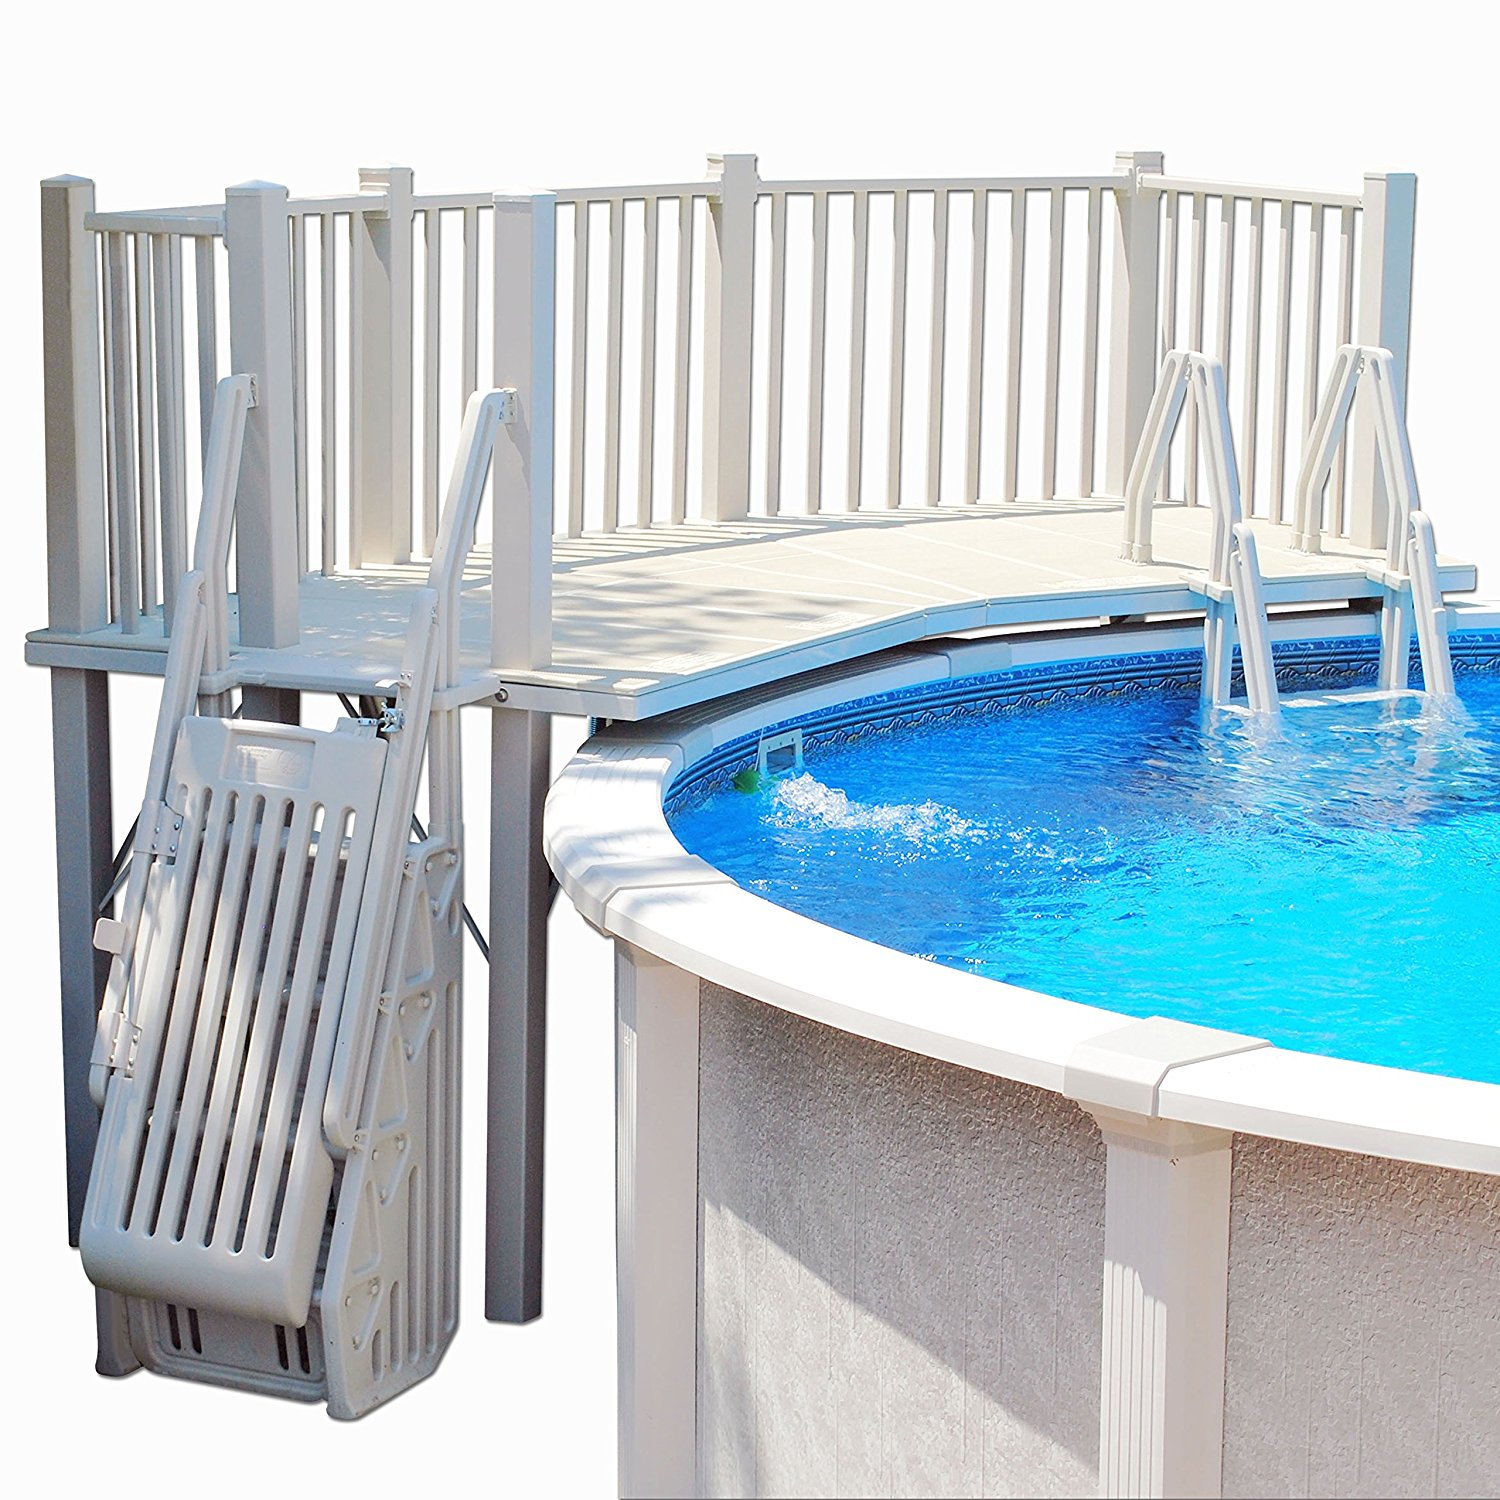 Vinyl Works Above Ground Swimming Pool Resin Deck Kit - Taupe 5 x 13.5 Feet